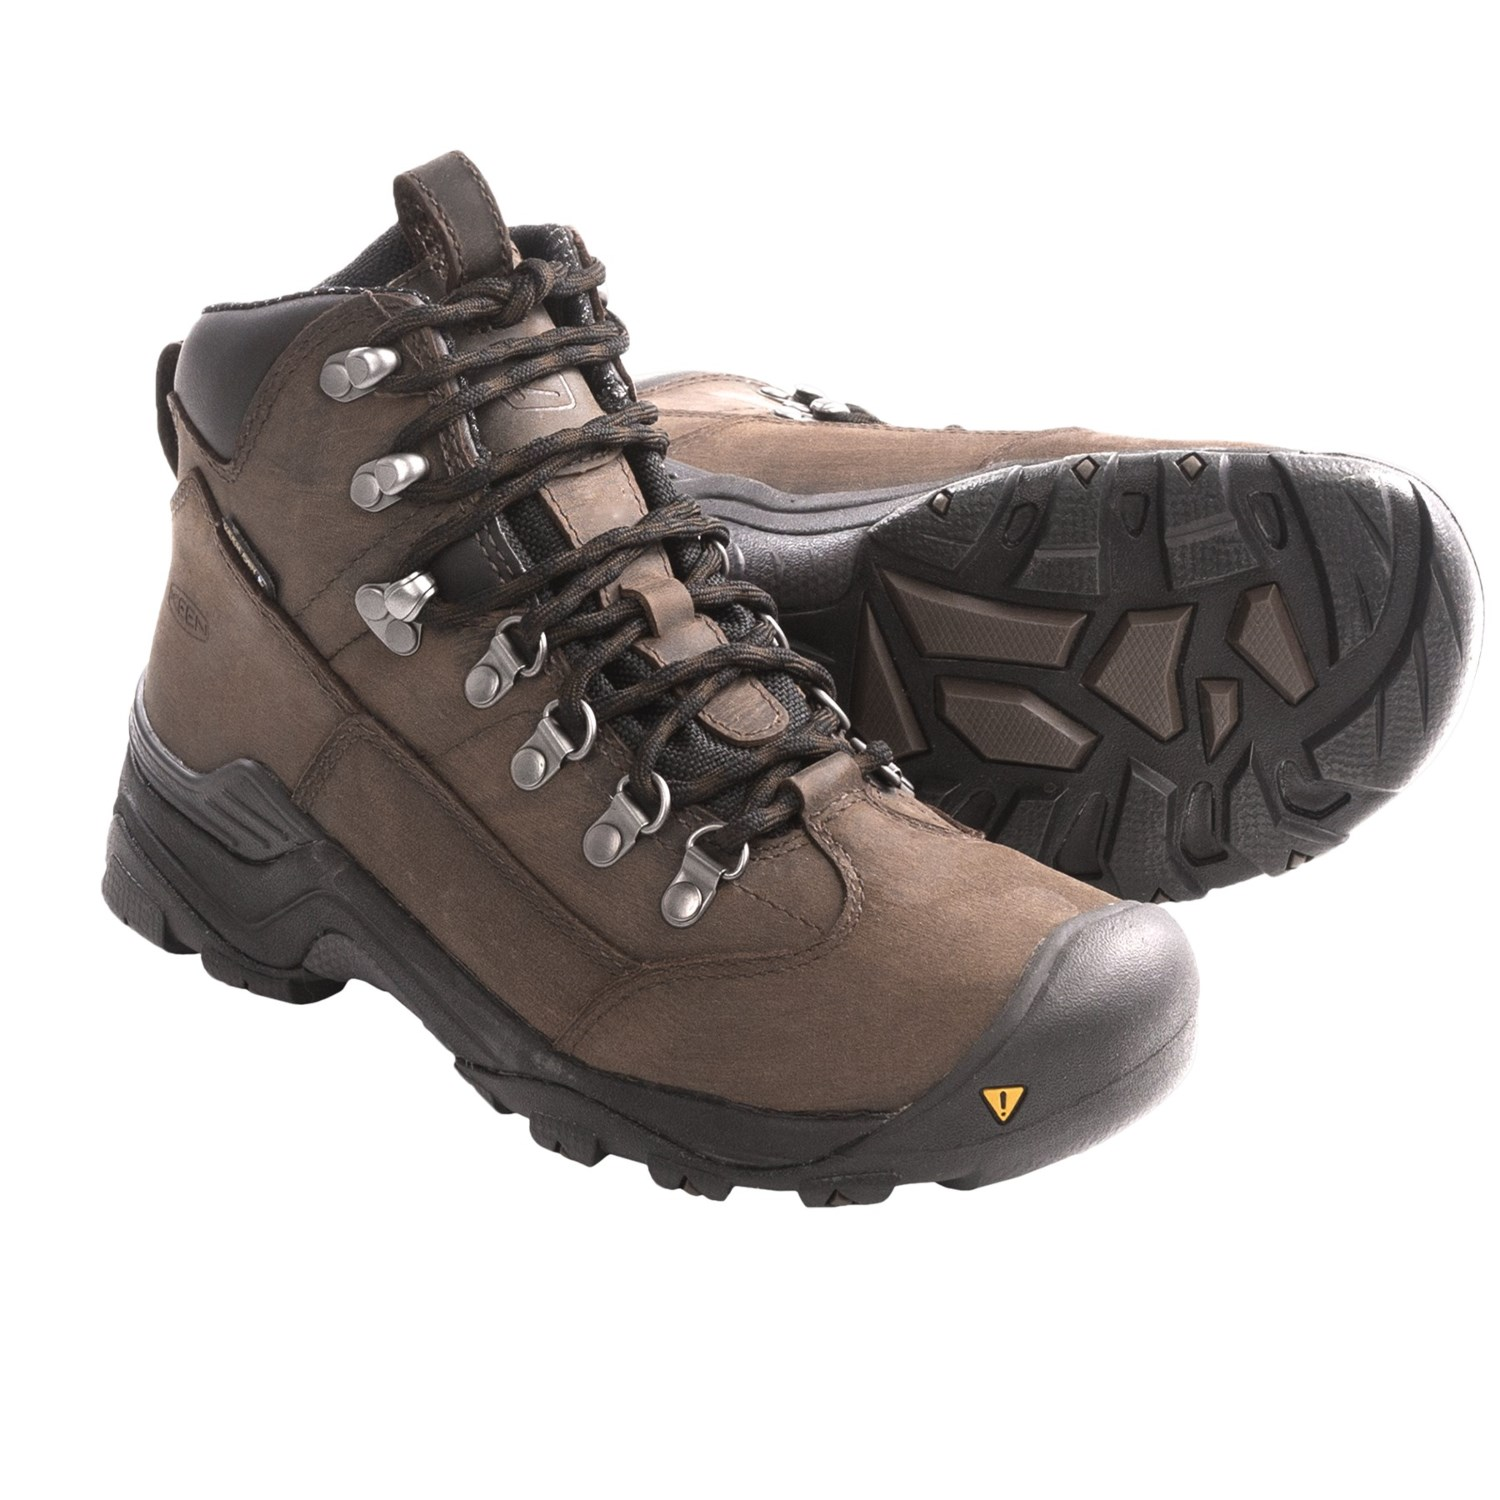 Wonderful  Discovery GTX Womens Black Waterproof Walking Hiking Outdoors Boots